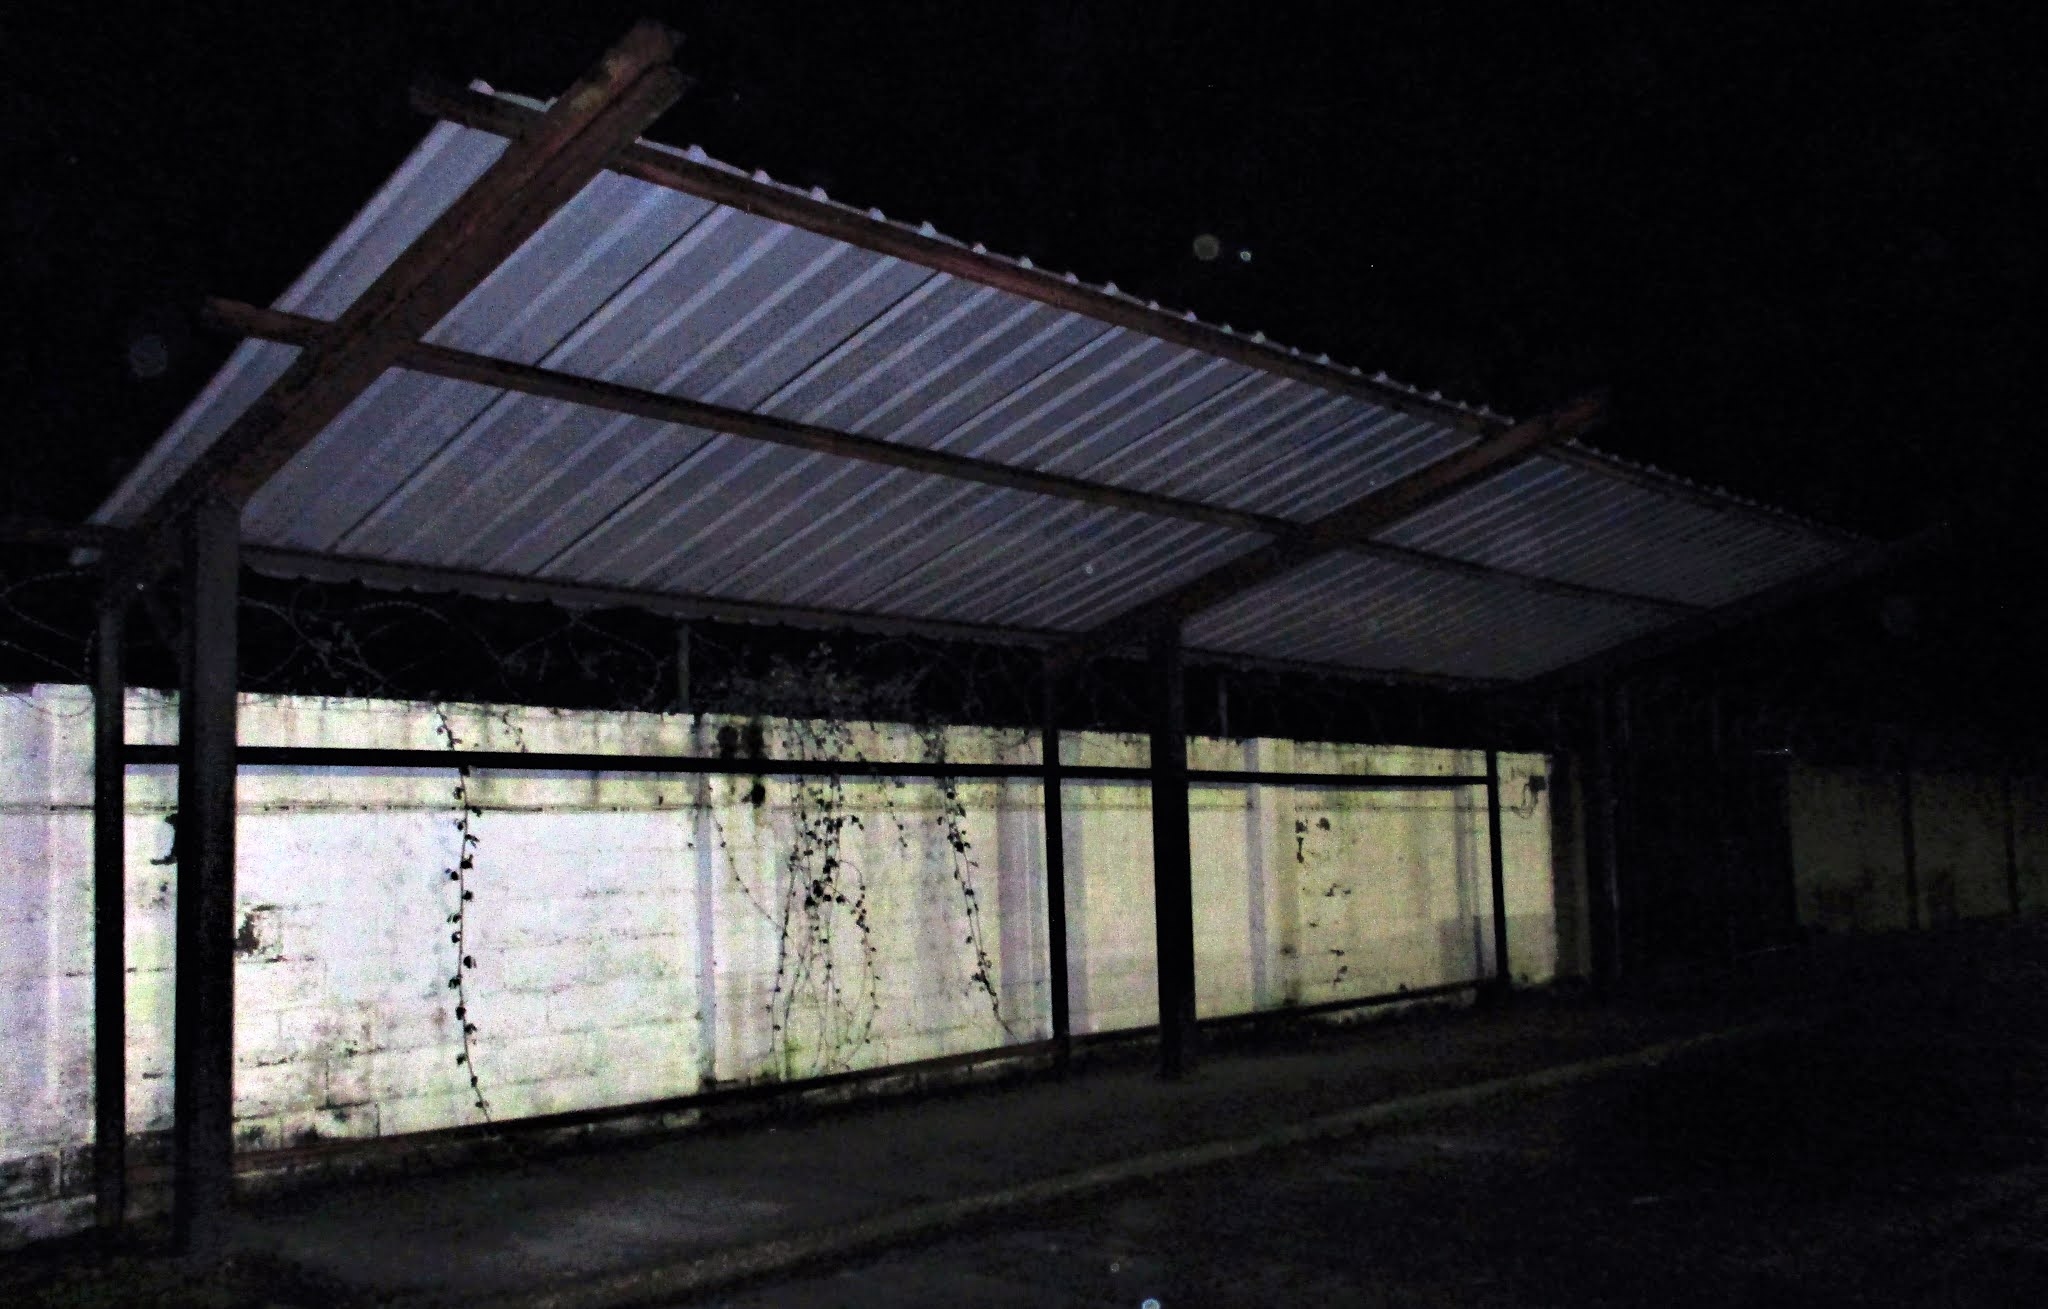 Sheltered stand at The Rivermoor Stadium